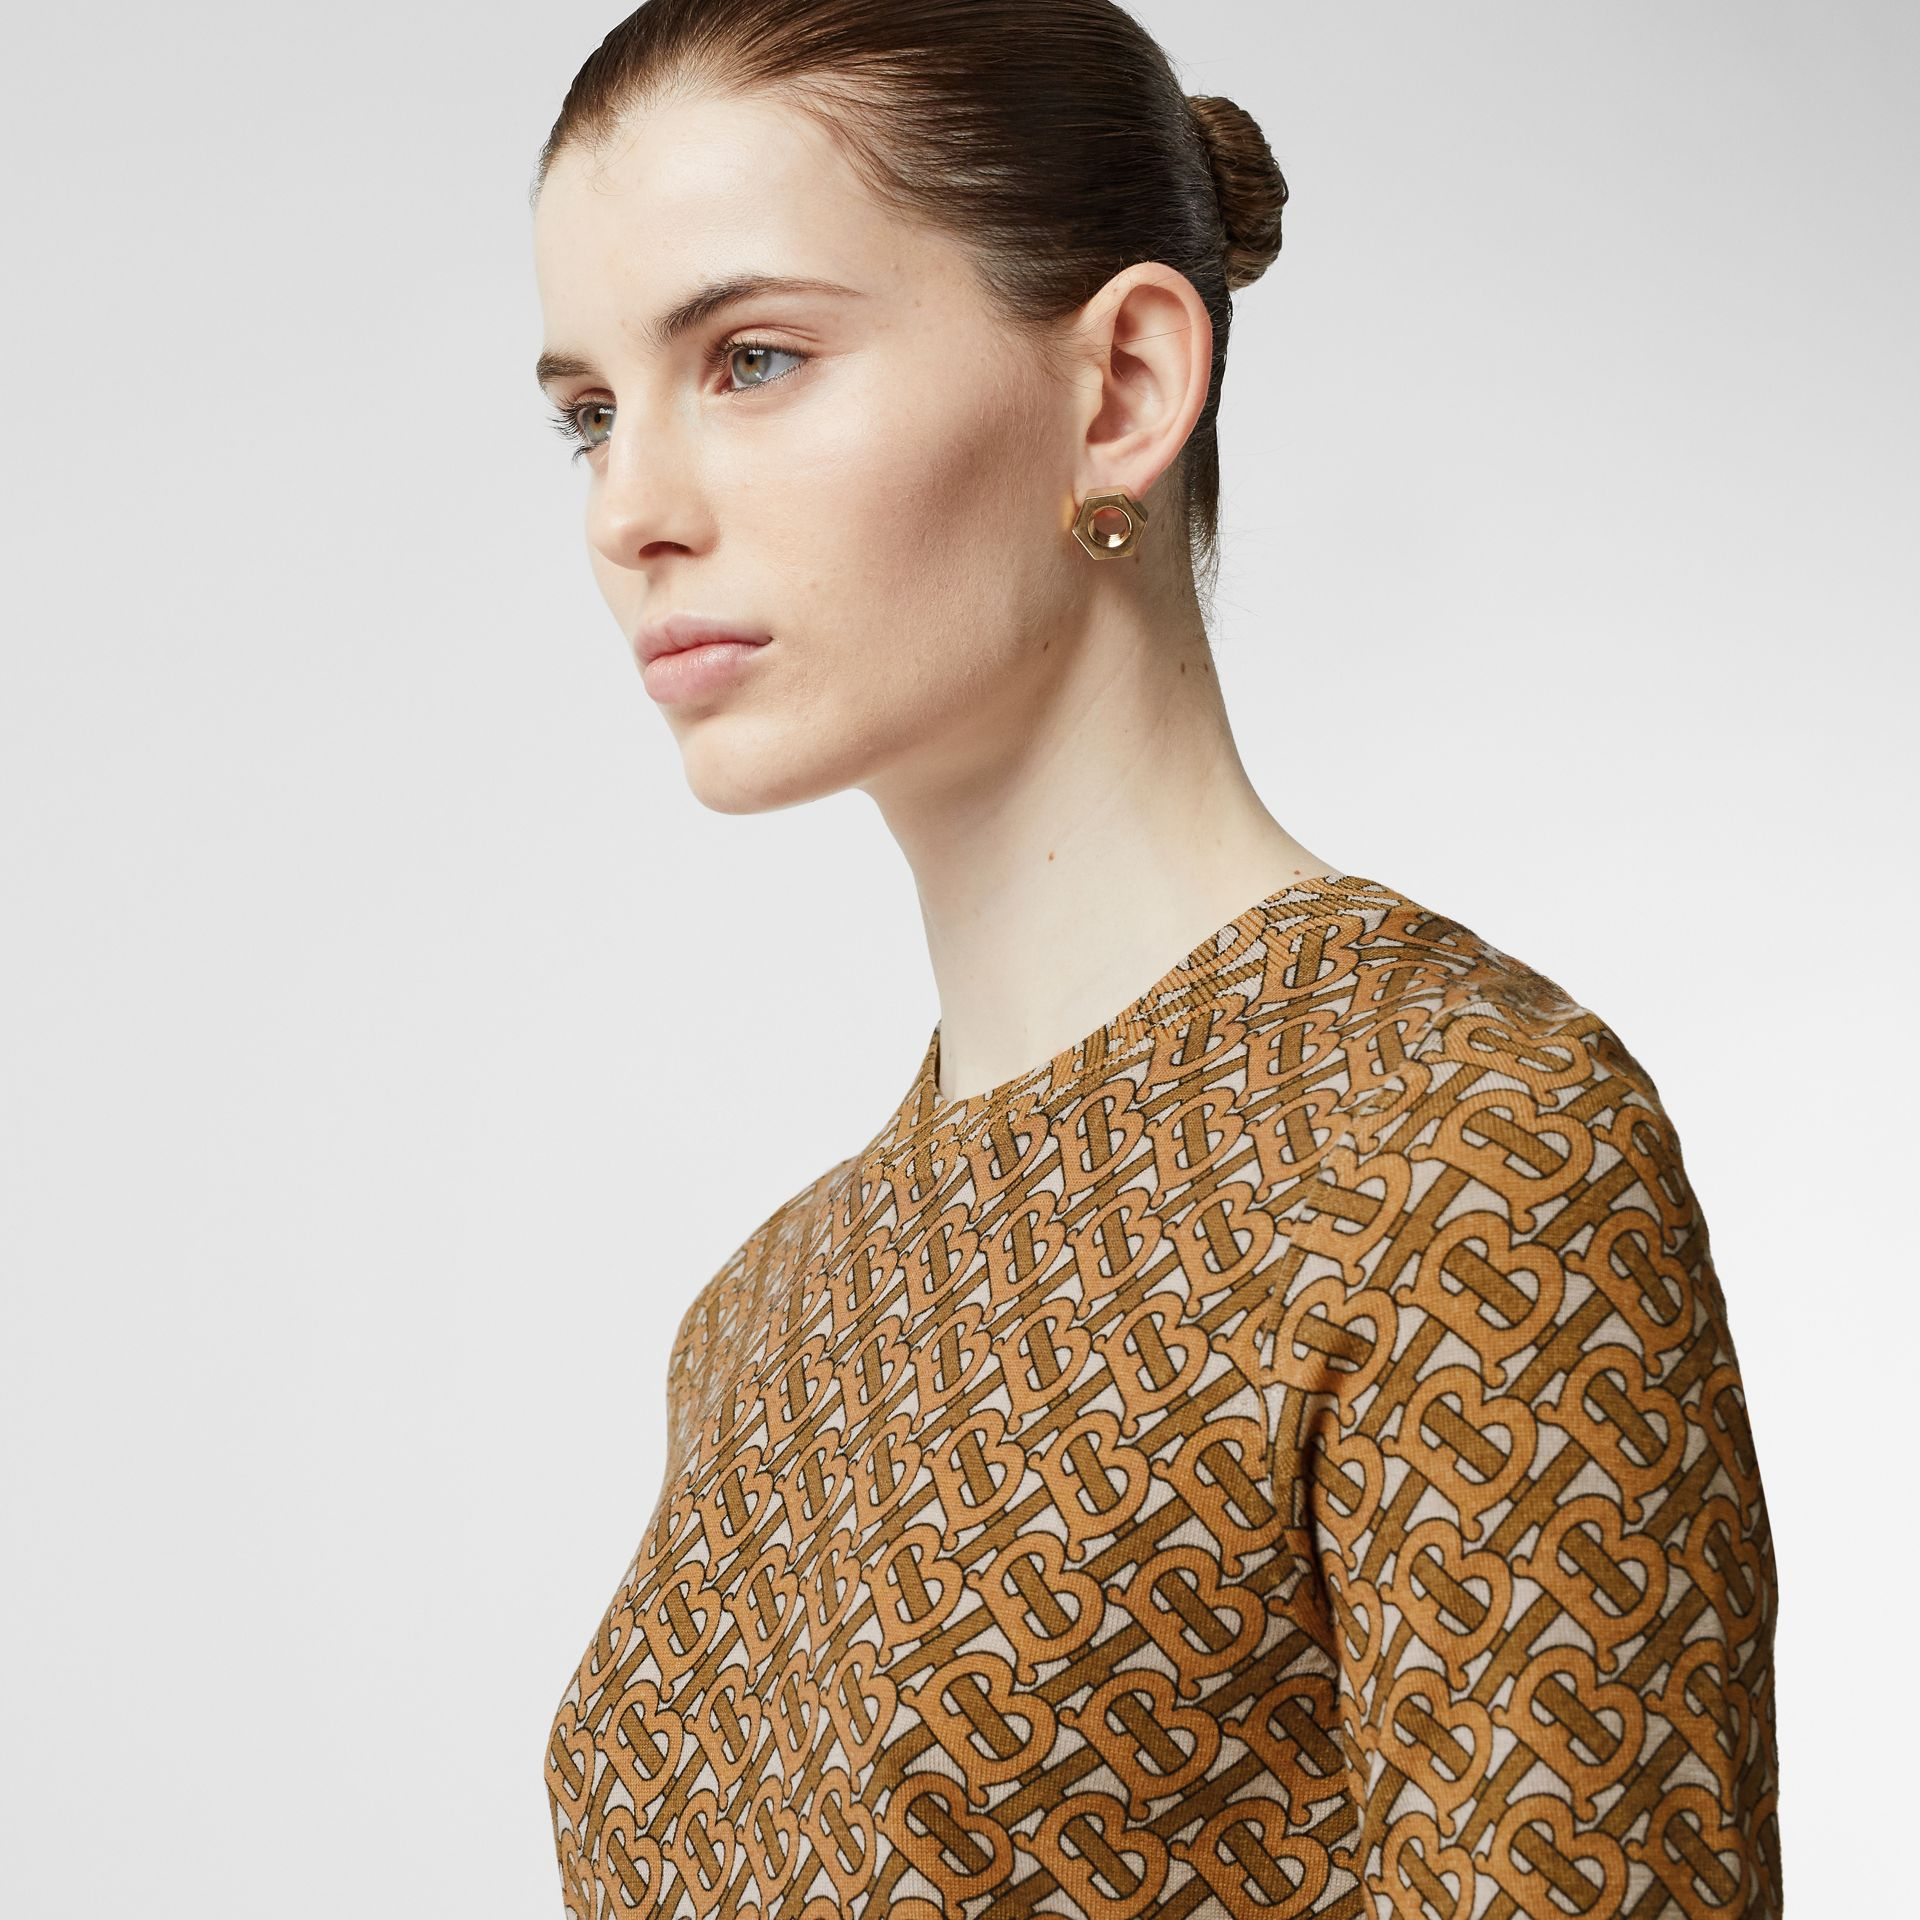 Monogram Print Merino Wool Top in Beige - Women | Burberry Australia - gallery image 1